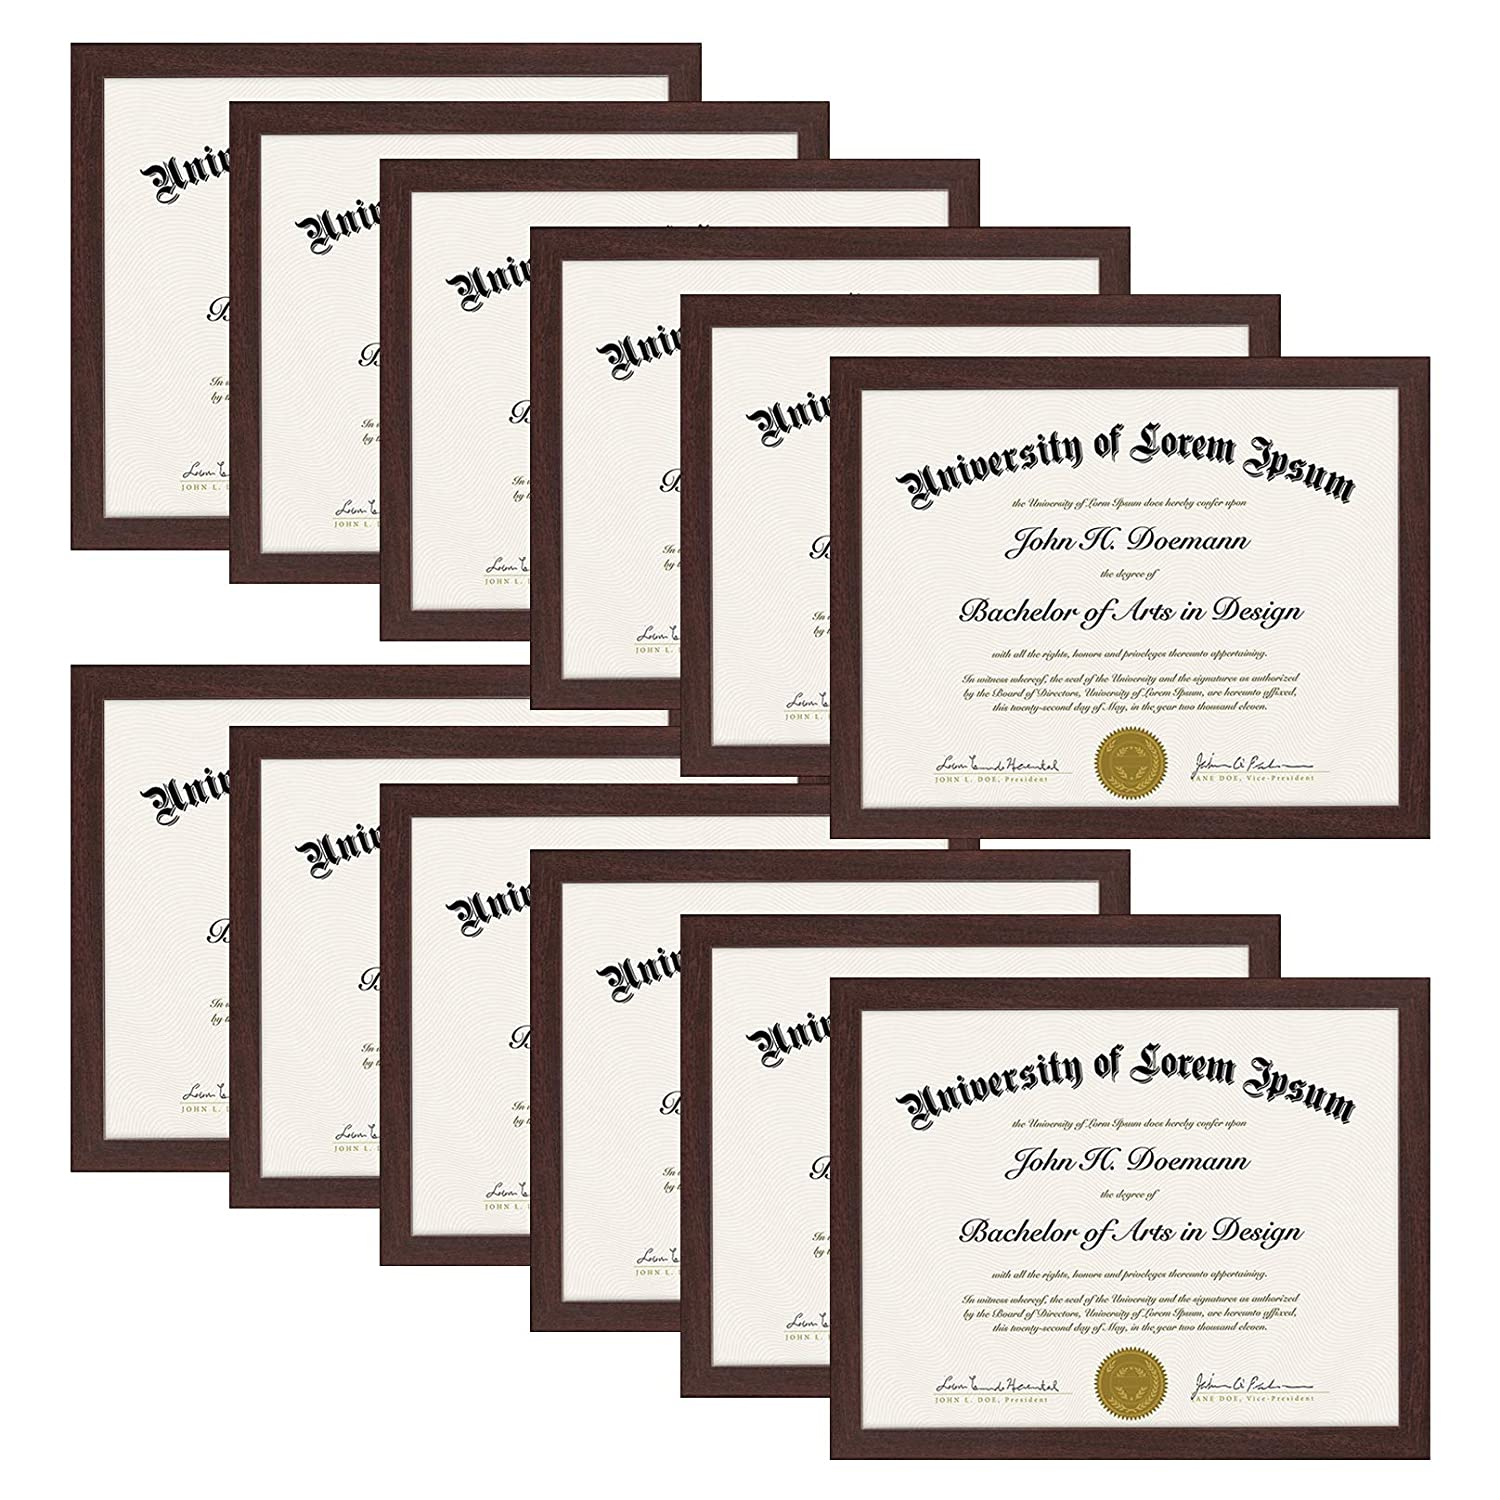 Americanflat Mahogany Document Frame - Made to Display Certificates 8.5x11, Classic Style, Mahogany Brown - Document Frames, Certificate Frames, Diploma Frames DO8511MWWA1